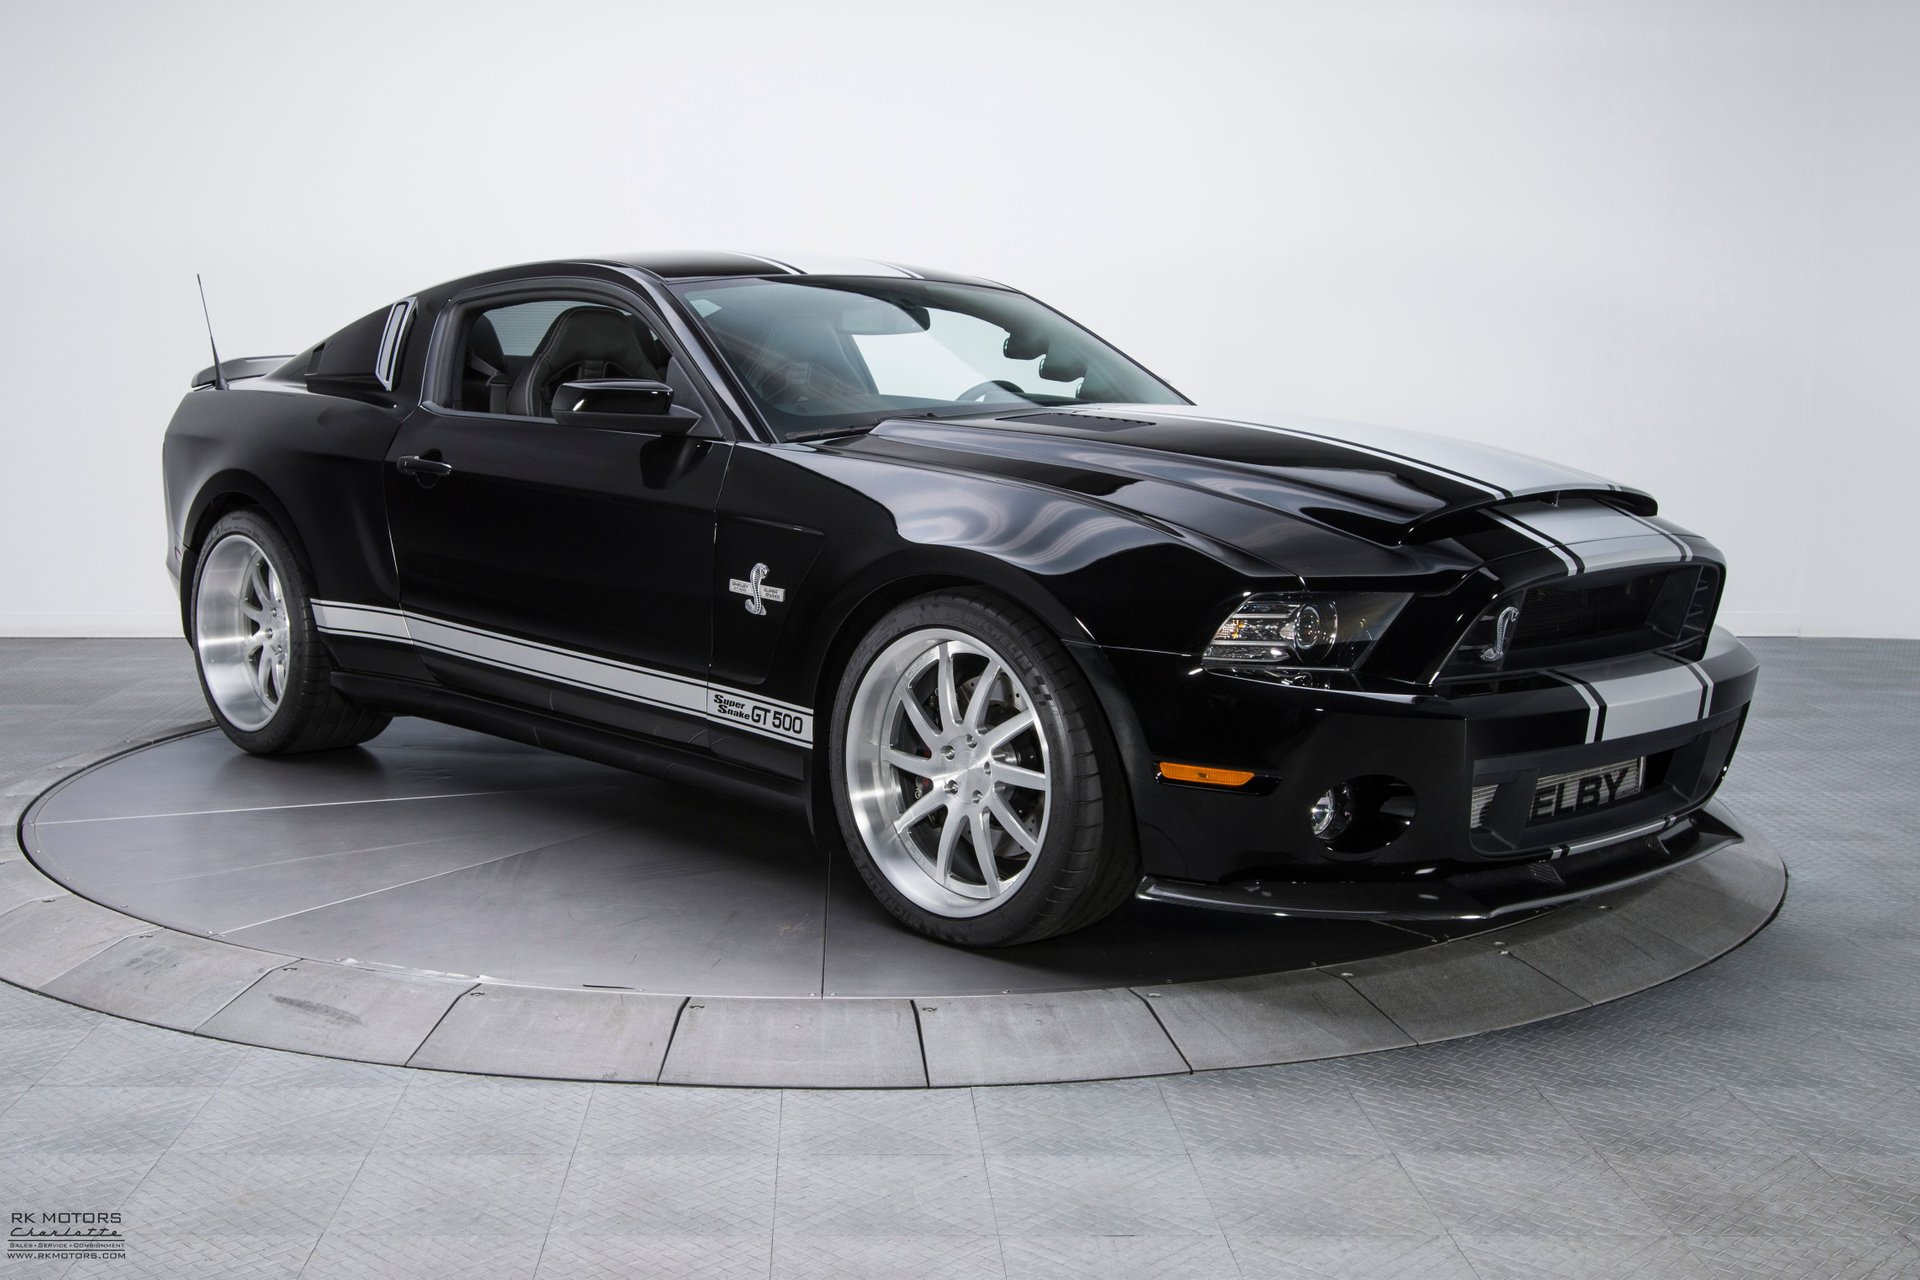 136020 2013 Ford Shelby Mustang Rk Motors Classic Cars For Sale